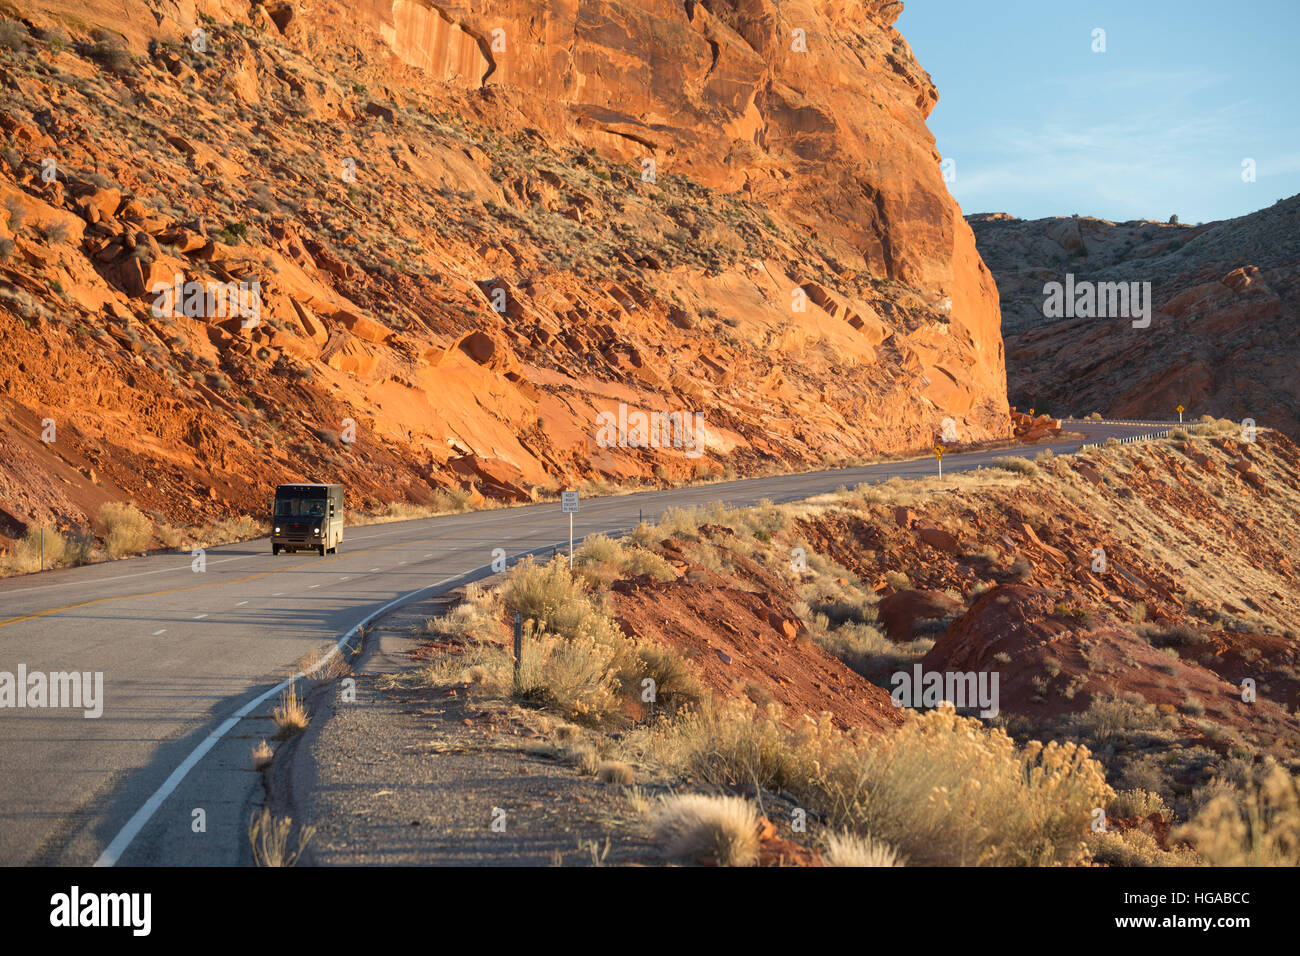 Bluff, Utah - A UPS delivery truck on US Highway 163, crossing Comb Ridge in Bears Ears National Monument. - Stock Image